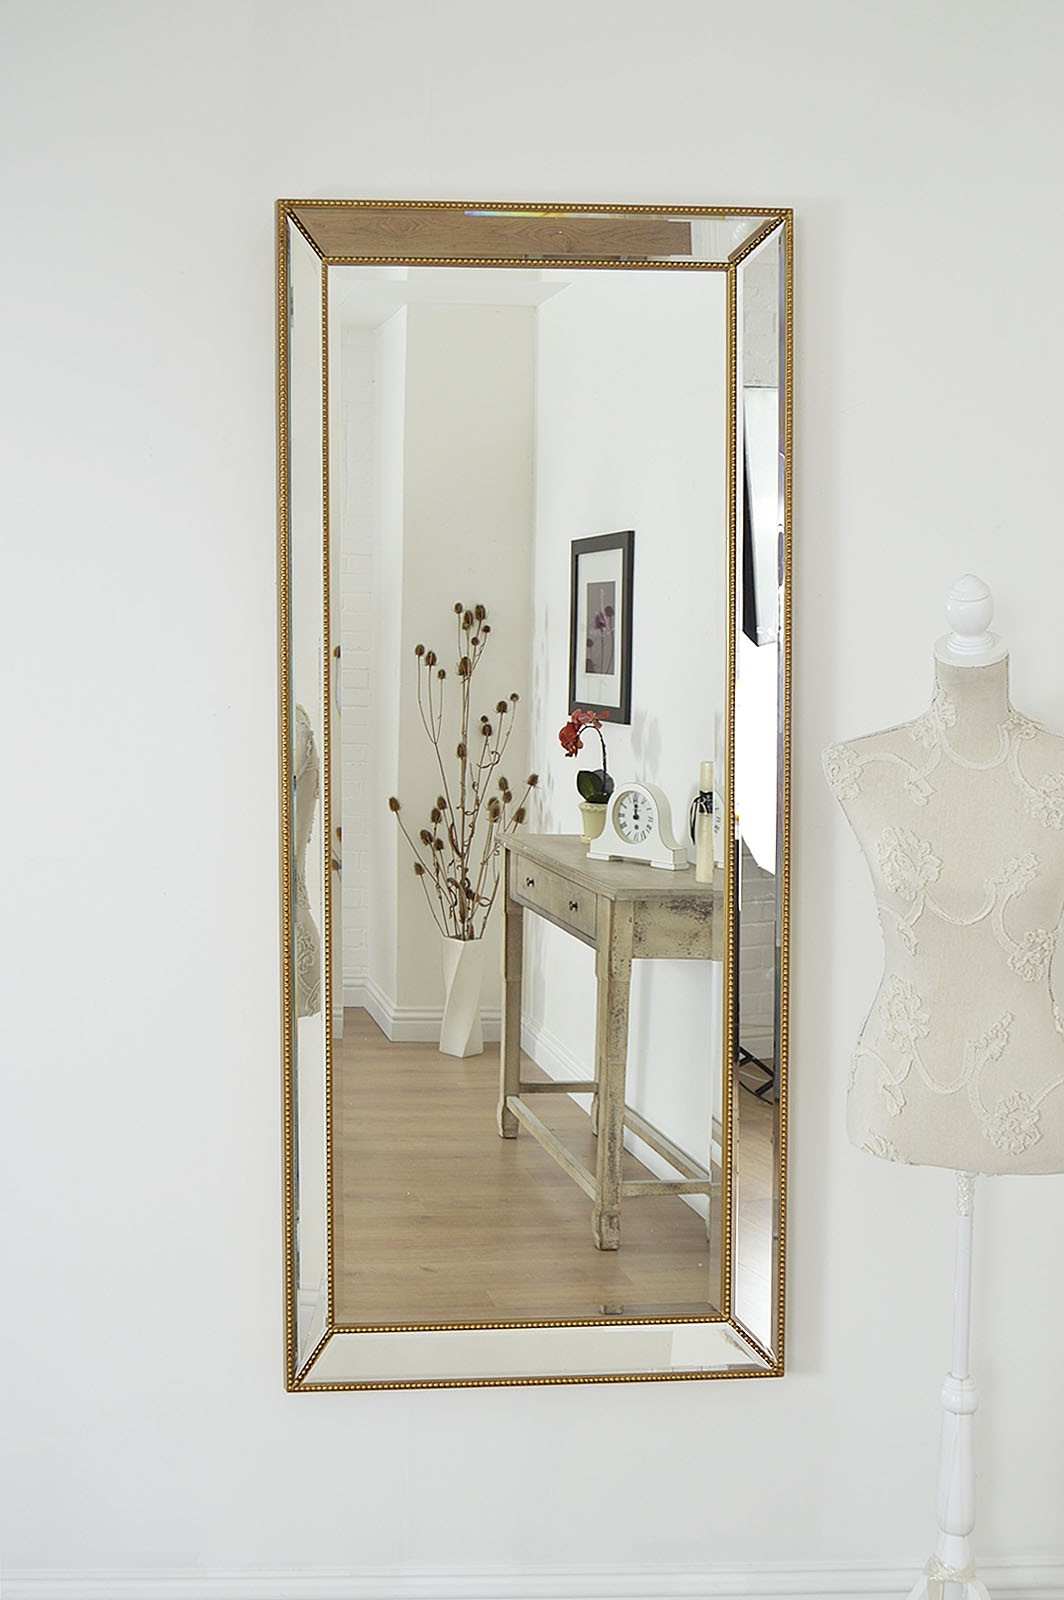 Venetianframeless Mirrors Category Pertaining To Venetian Mirror Large (Image 15 of 15)